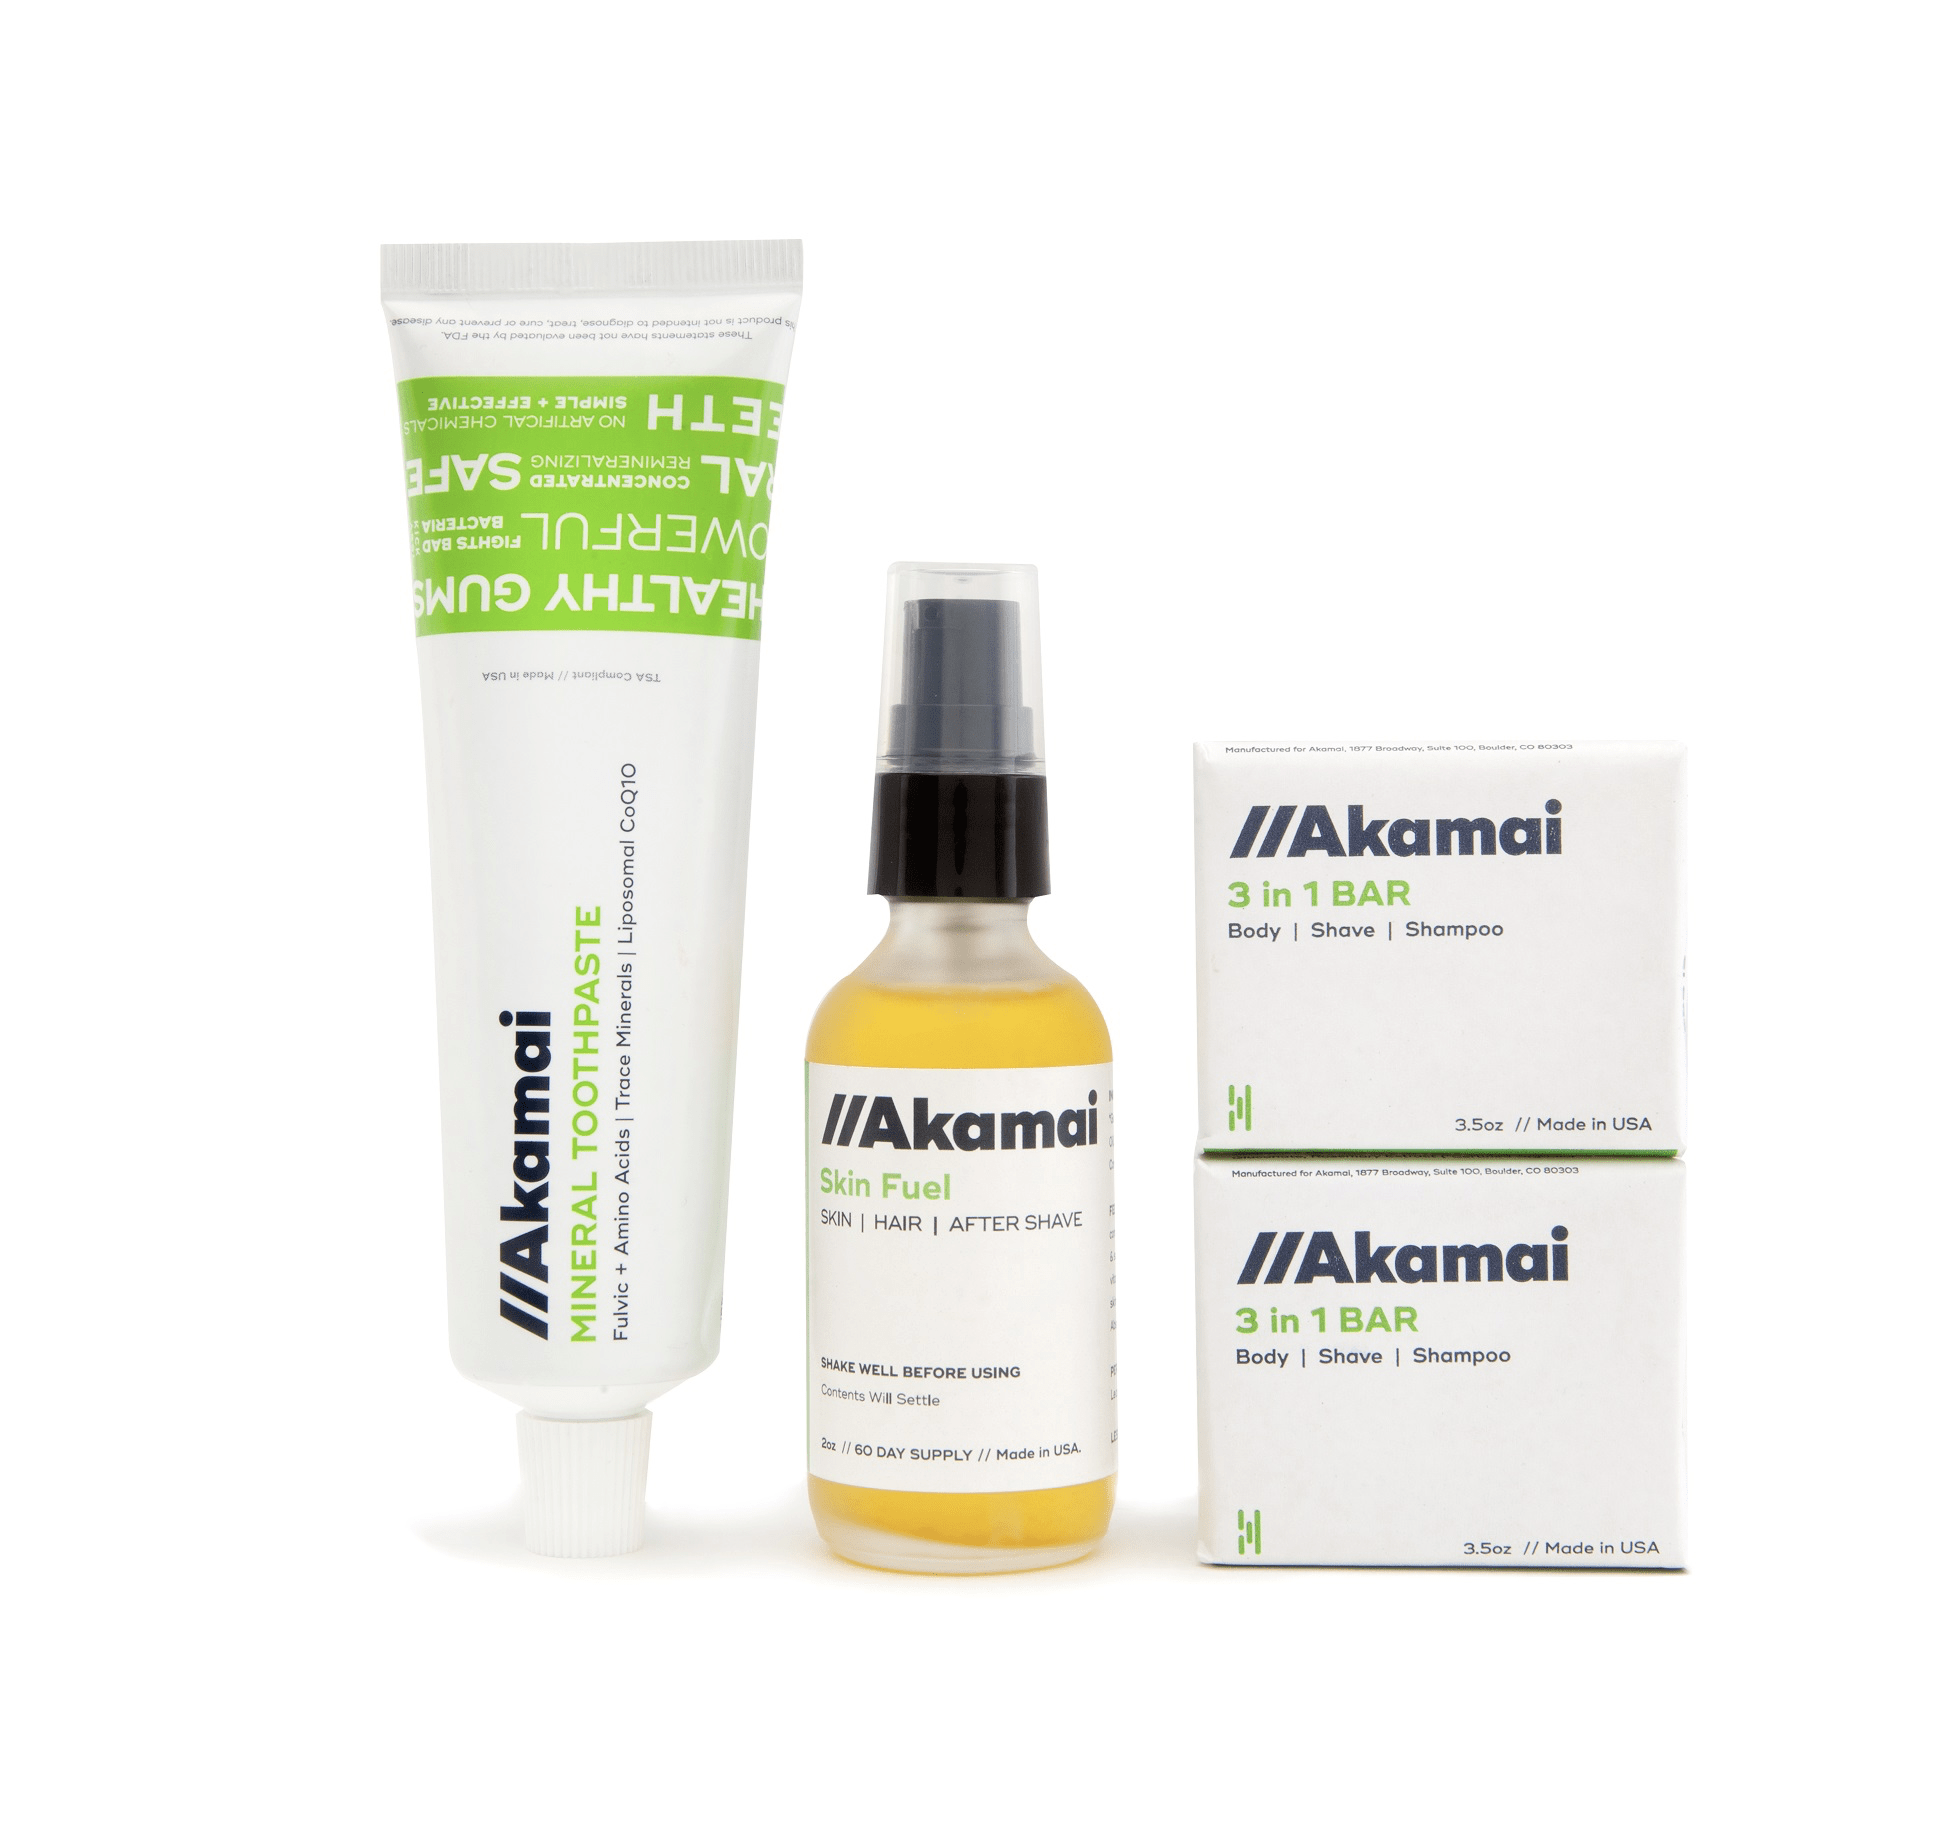 Akamai Cyber Monday Coupon: 25% Off Natural & Eco-Friendly Basics!